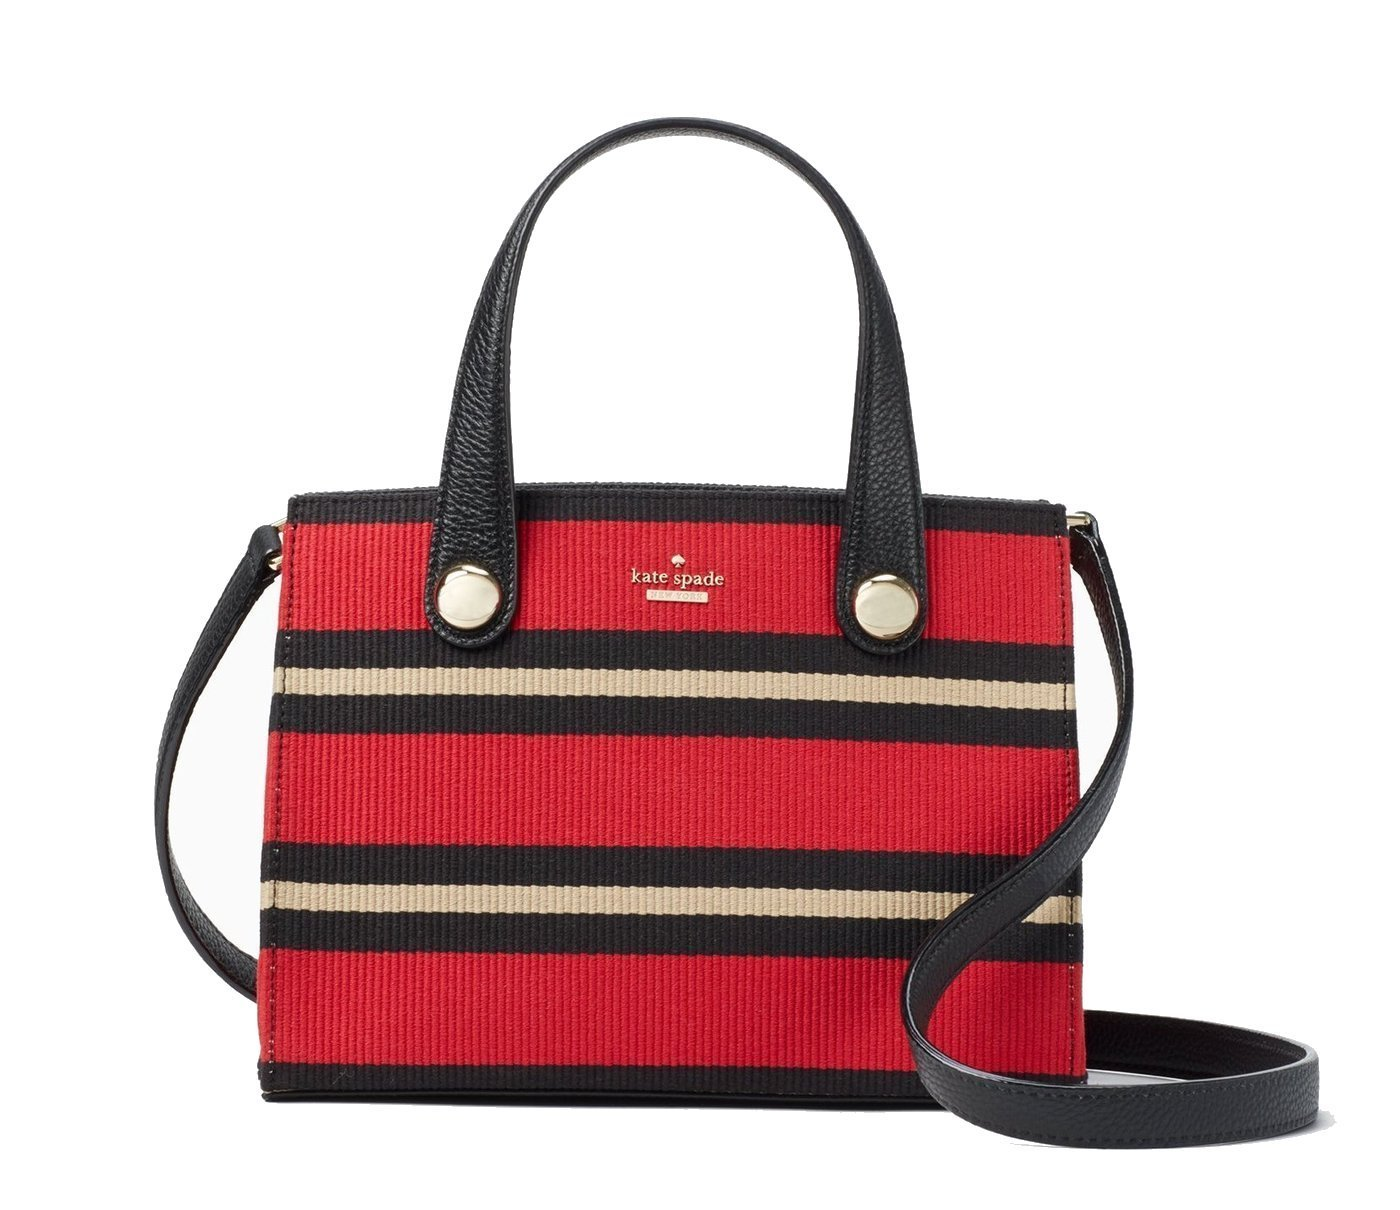 Kate Spade New York Women's Stewart Street Little Joy Tote, Multi, One Size